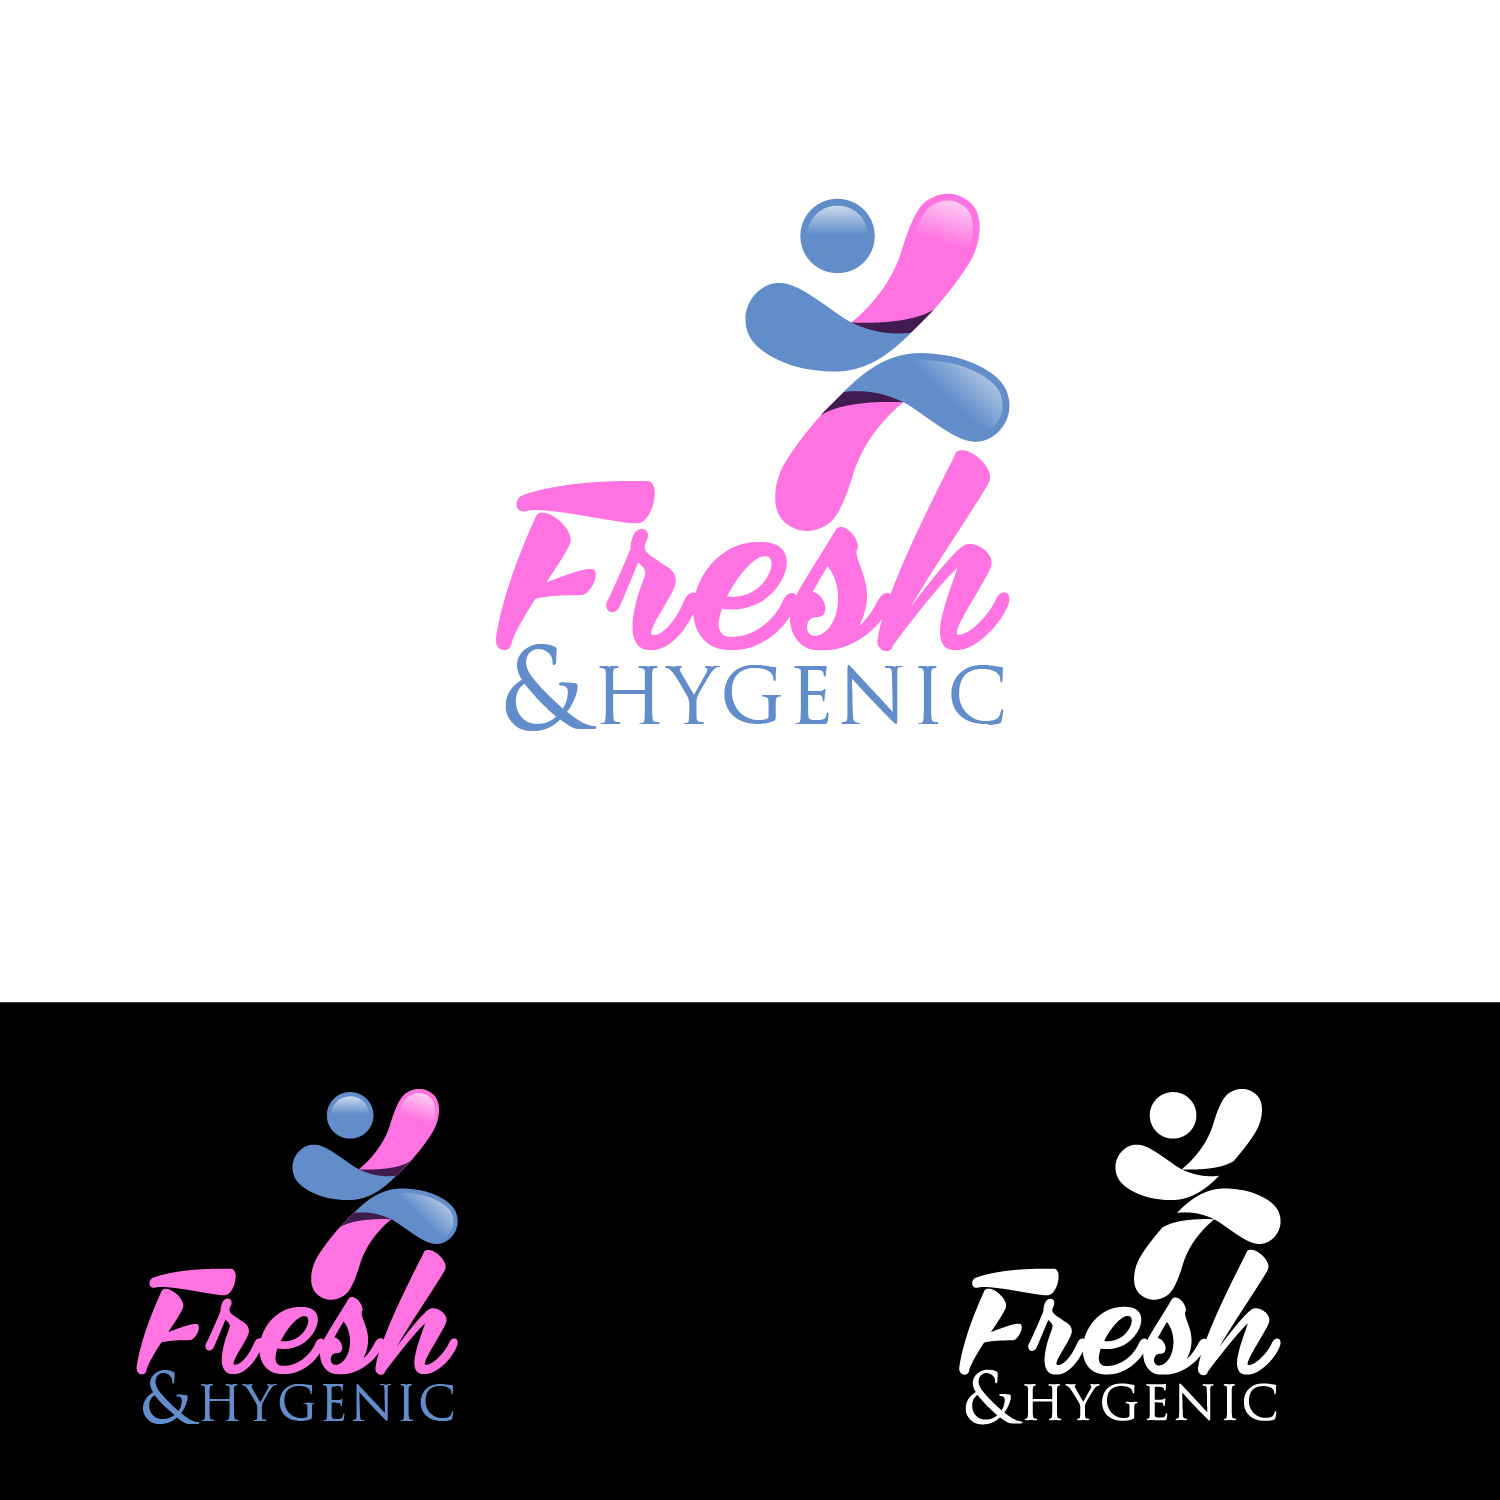 Logo Design by lagalag - Entry No. 10 in the Logo Design Contest Fun Logo Design for Fresh & Hygenic.